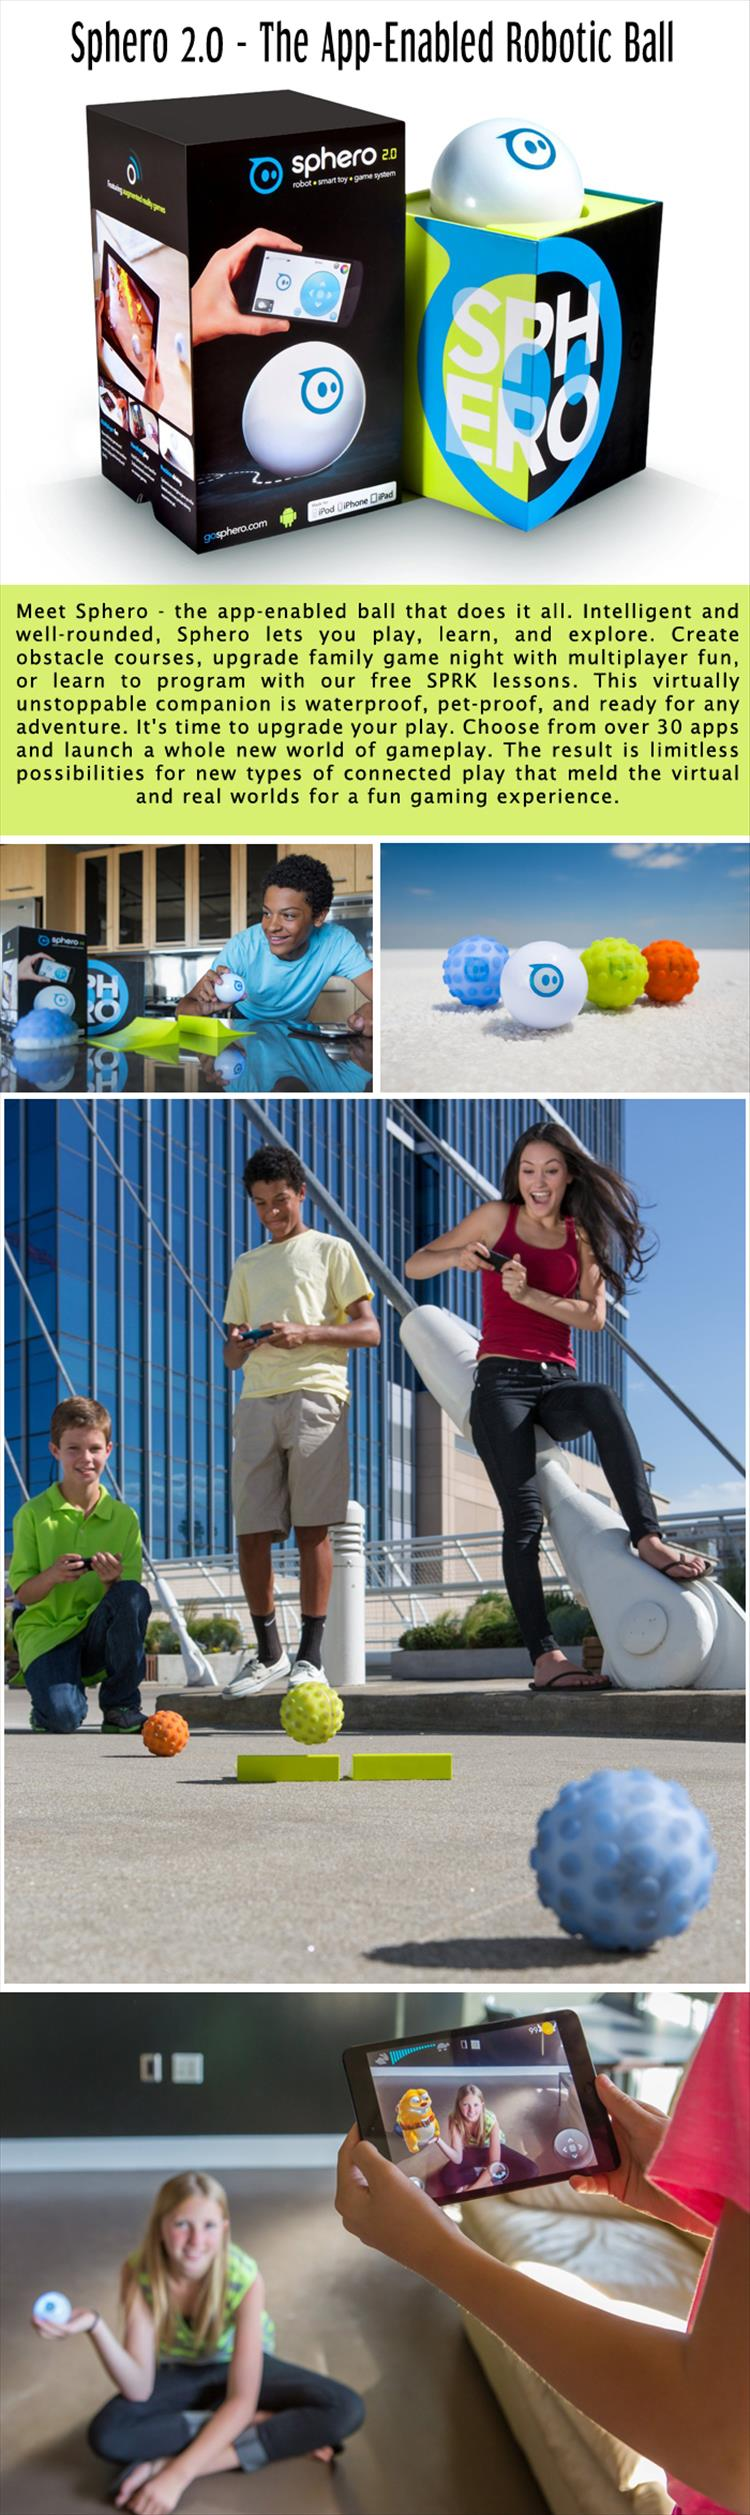 sphero-2-the-app-enabled-robotic-ball